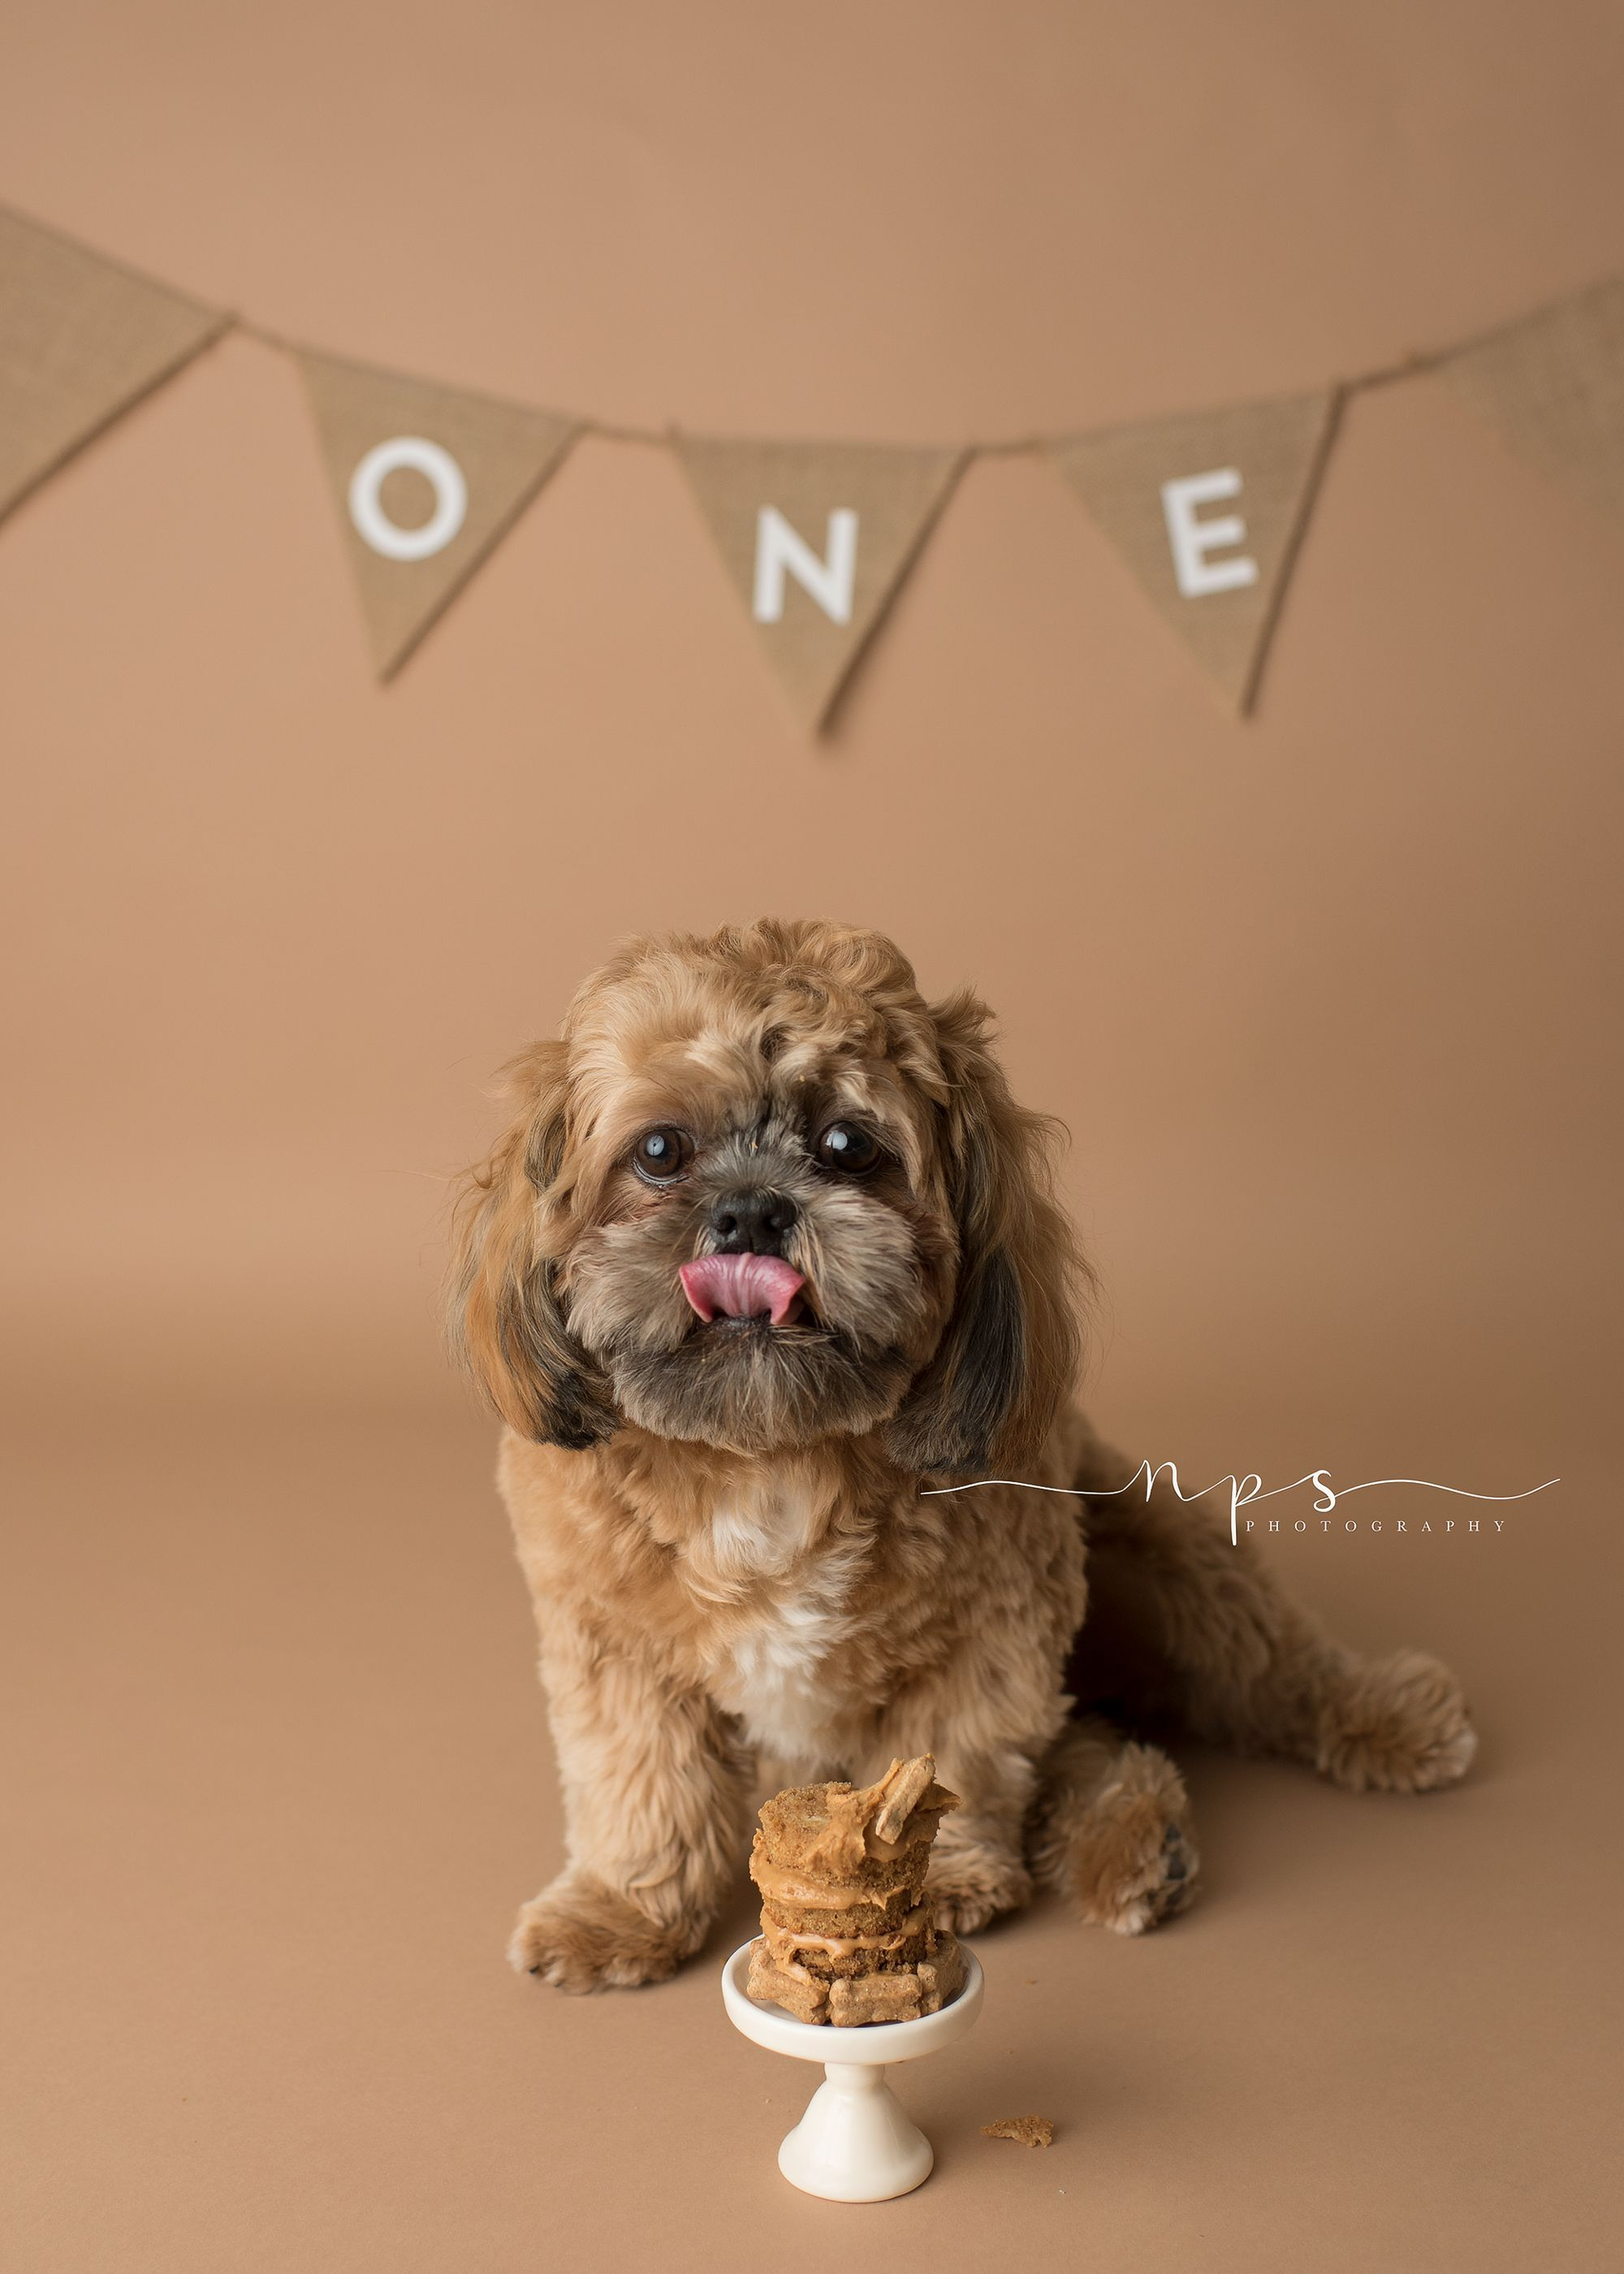 Puppy Cake Smash Our furry family member turns ONE and we celebrated with a Cake Smash in my Pinehurst studio A few pet photography tips from a Pinehurst Photographer